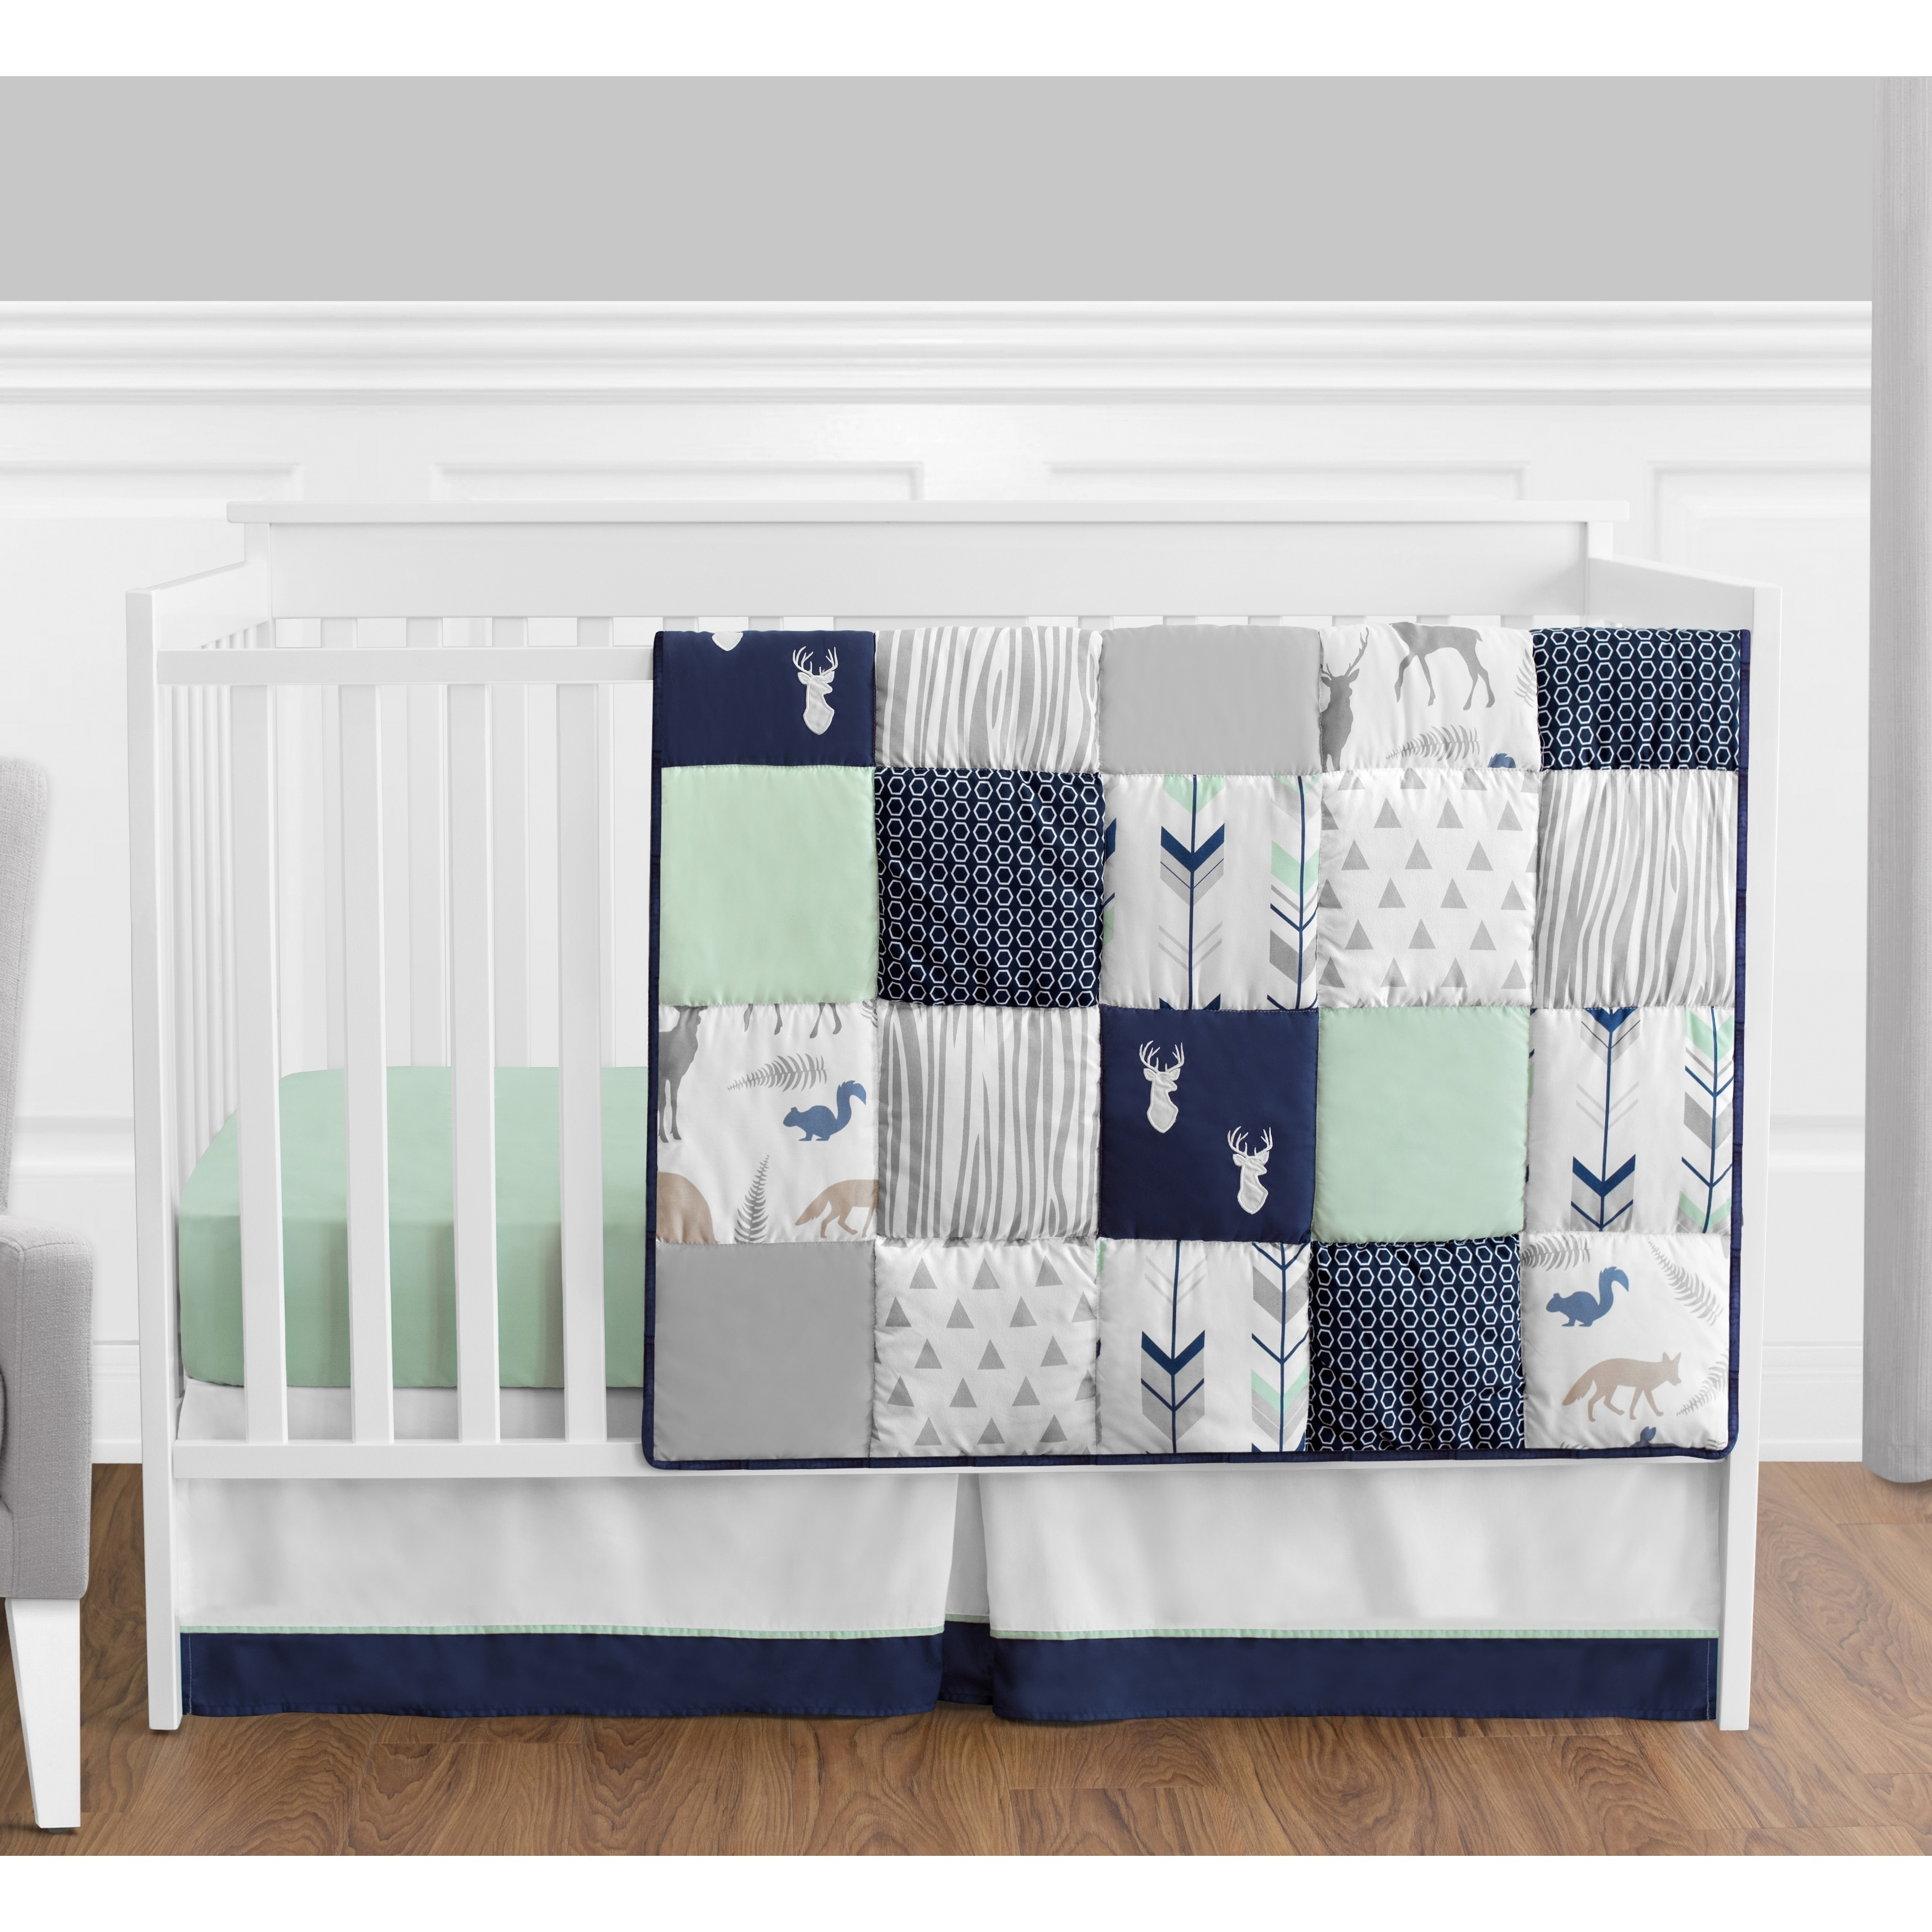 crib your nautical paint from wall little great baby pin bedding bedroom jojo and prices amazing ababy we designs for nights color with offer boy white at sweet cribs design